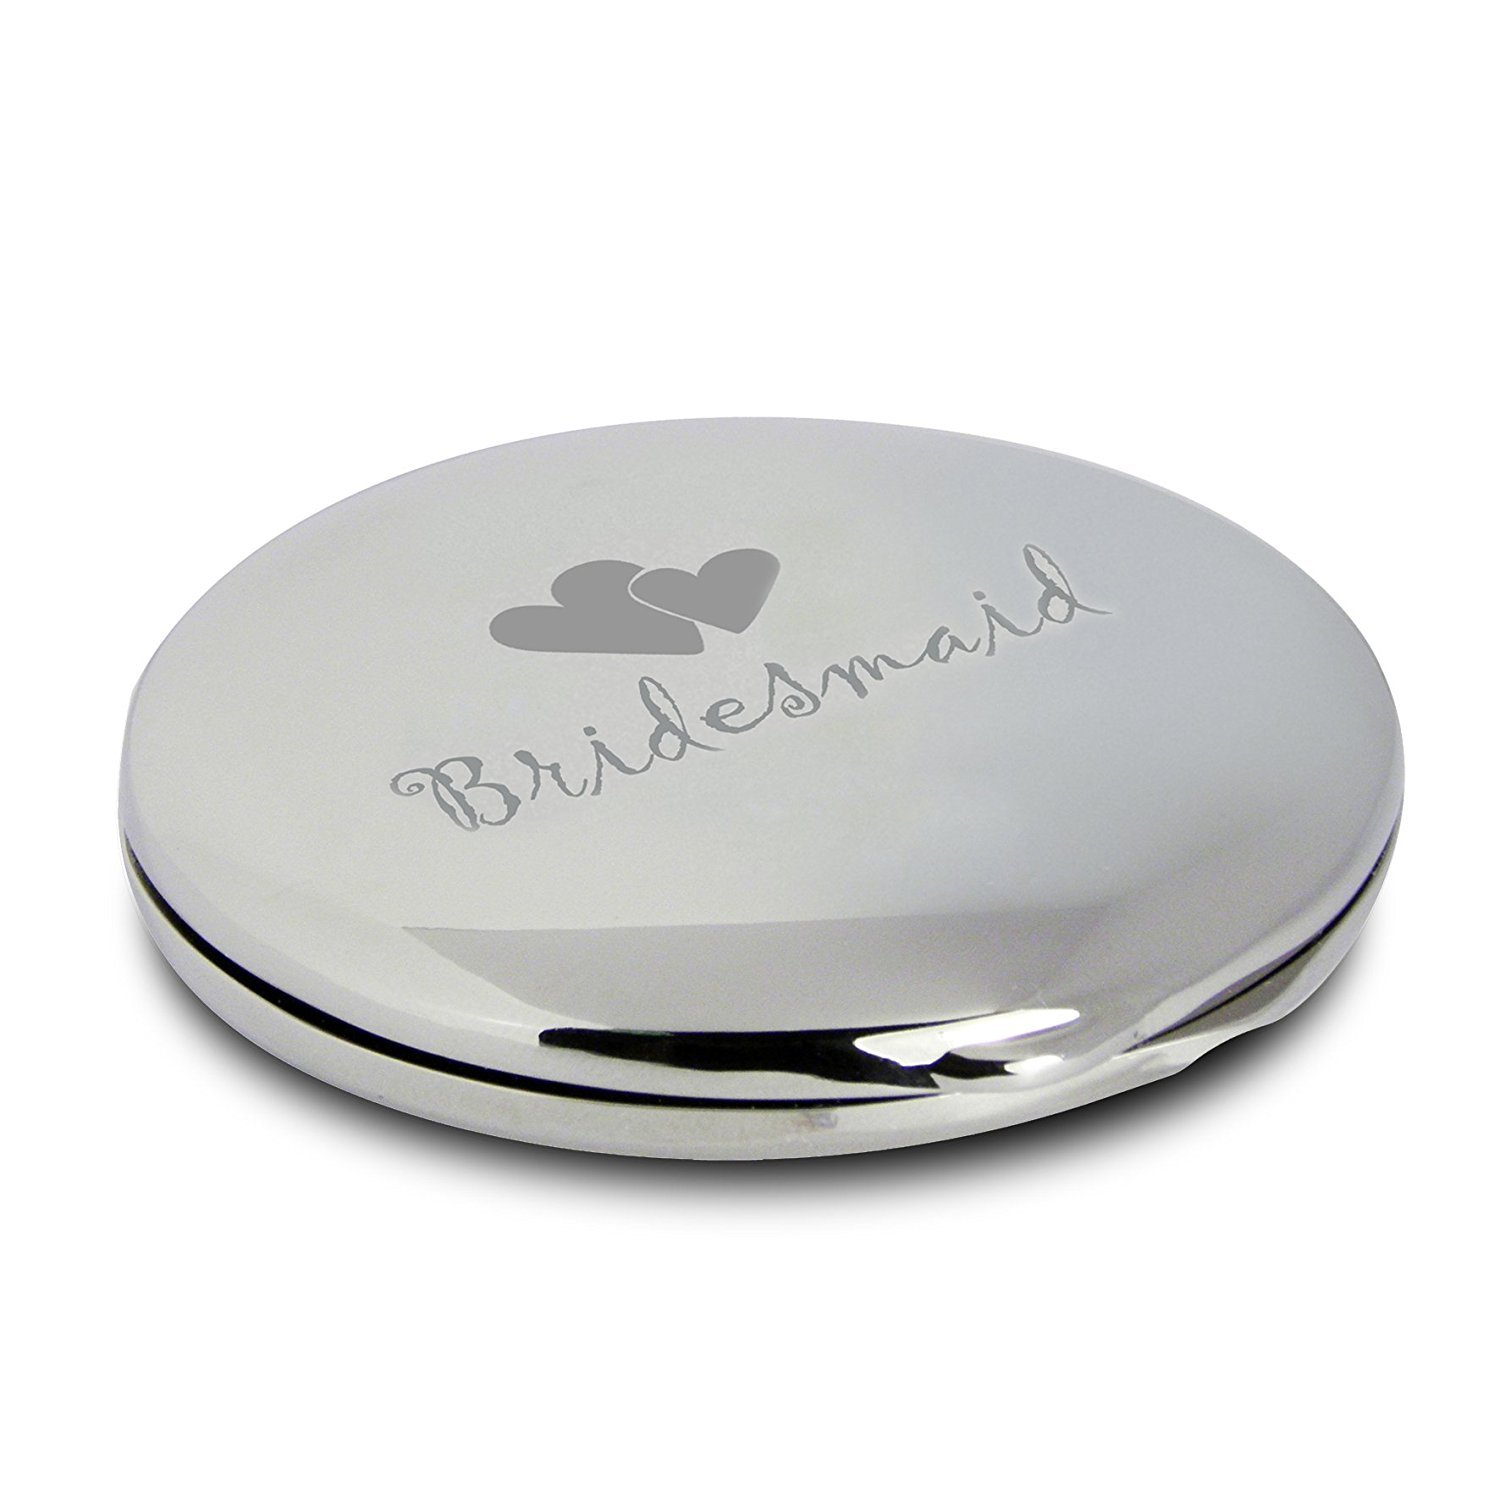 Silver Finish Engraved Bridesmaid Round Compact Mirror with Heart Motif Great Gift Idea for Wedding Thank You Gifts Presents Bridesmaids HealthCenter